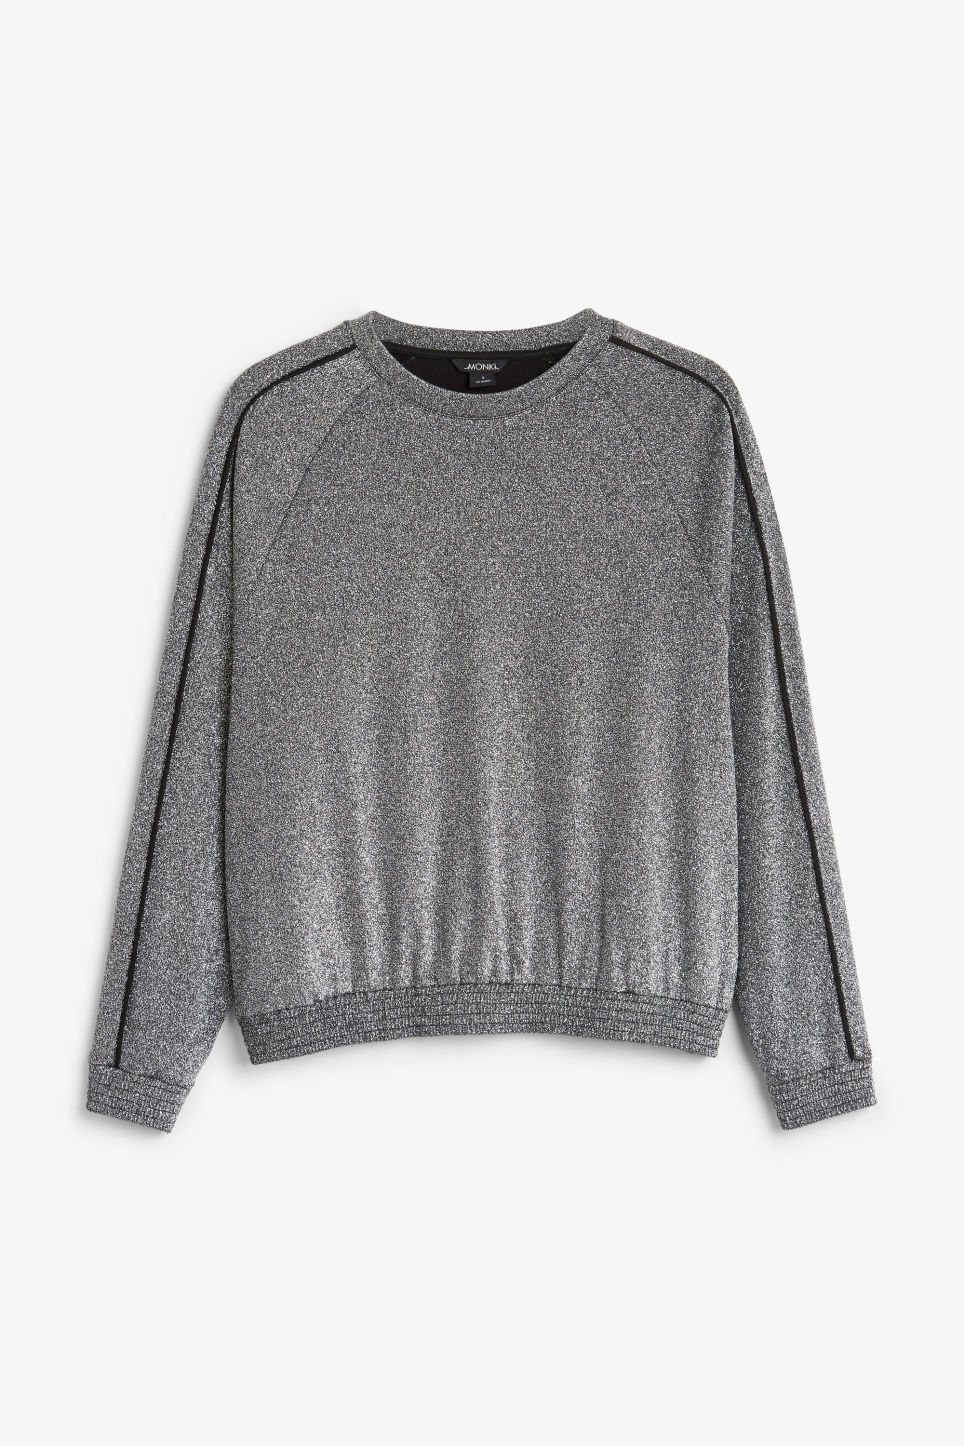 Front image of Monki oversized metallic sweater in black